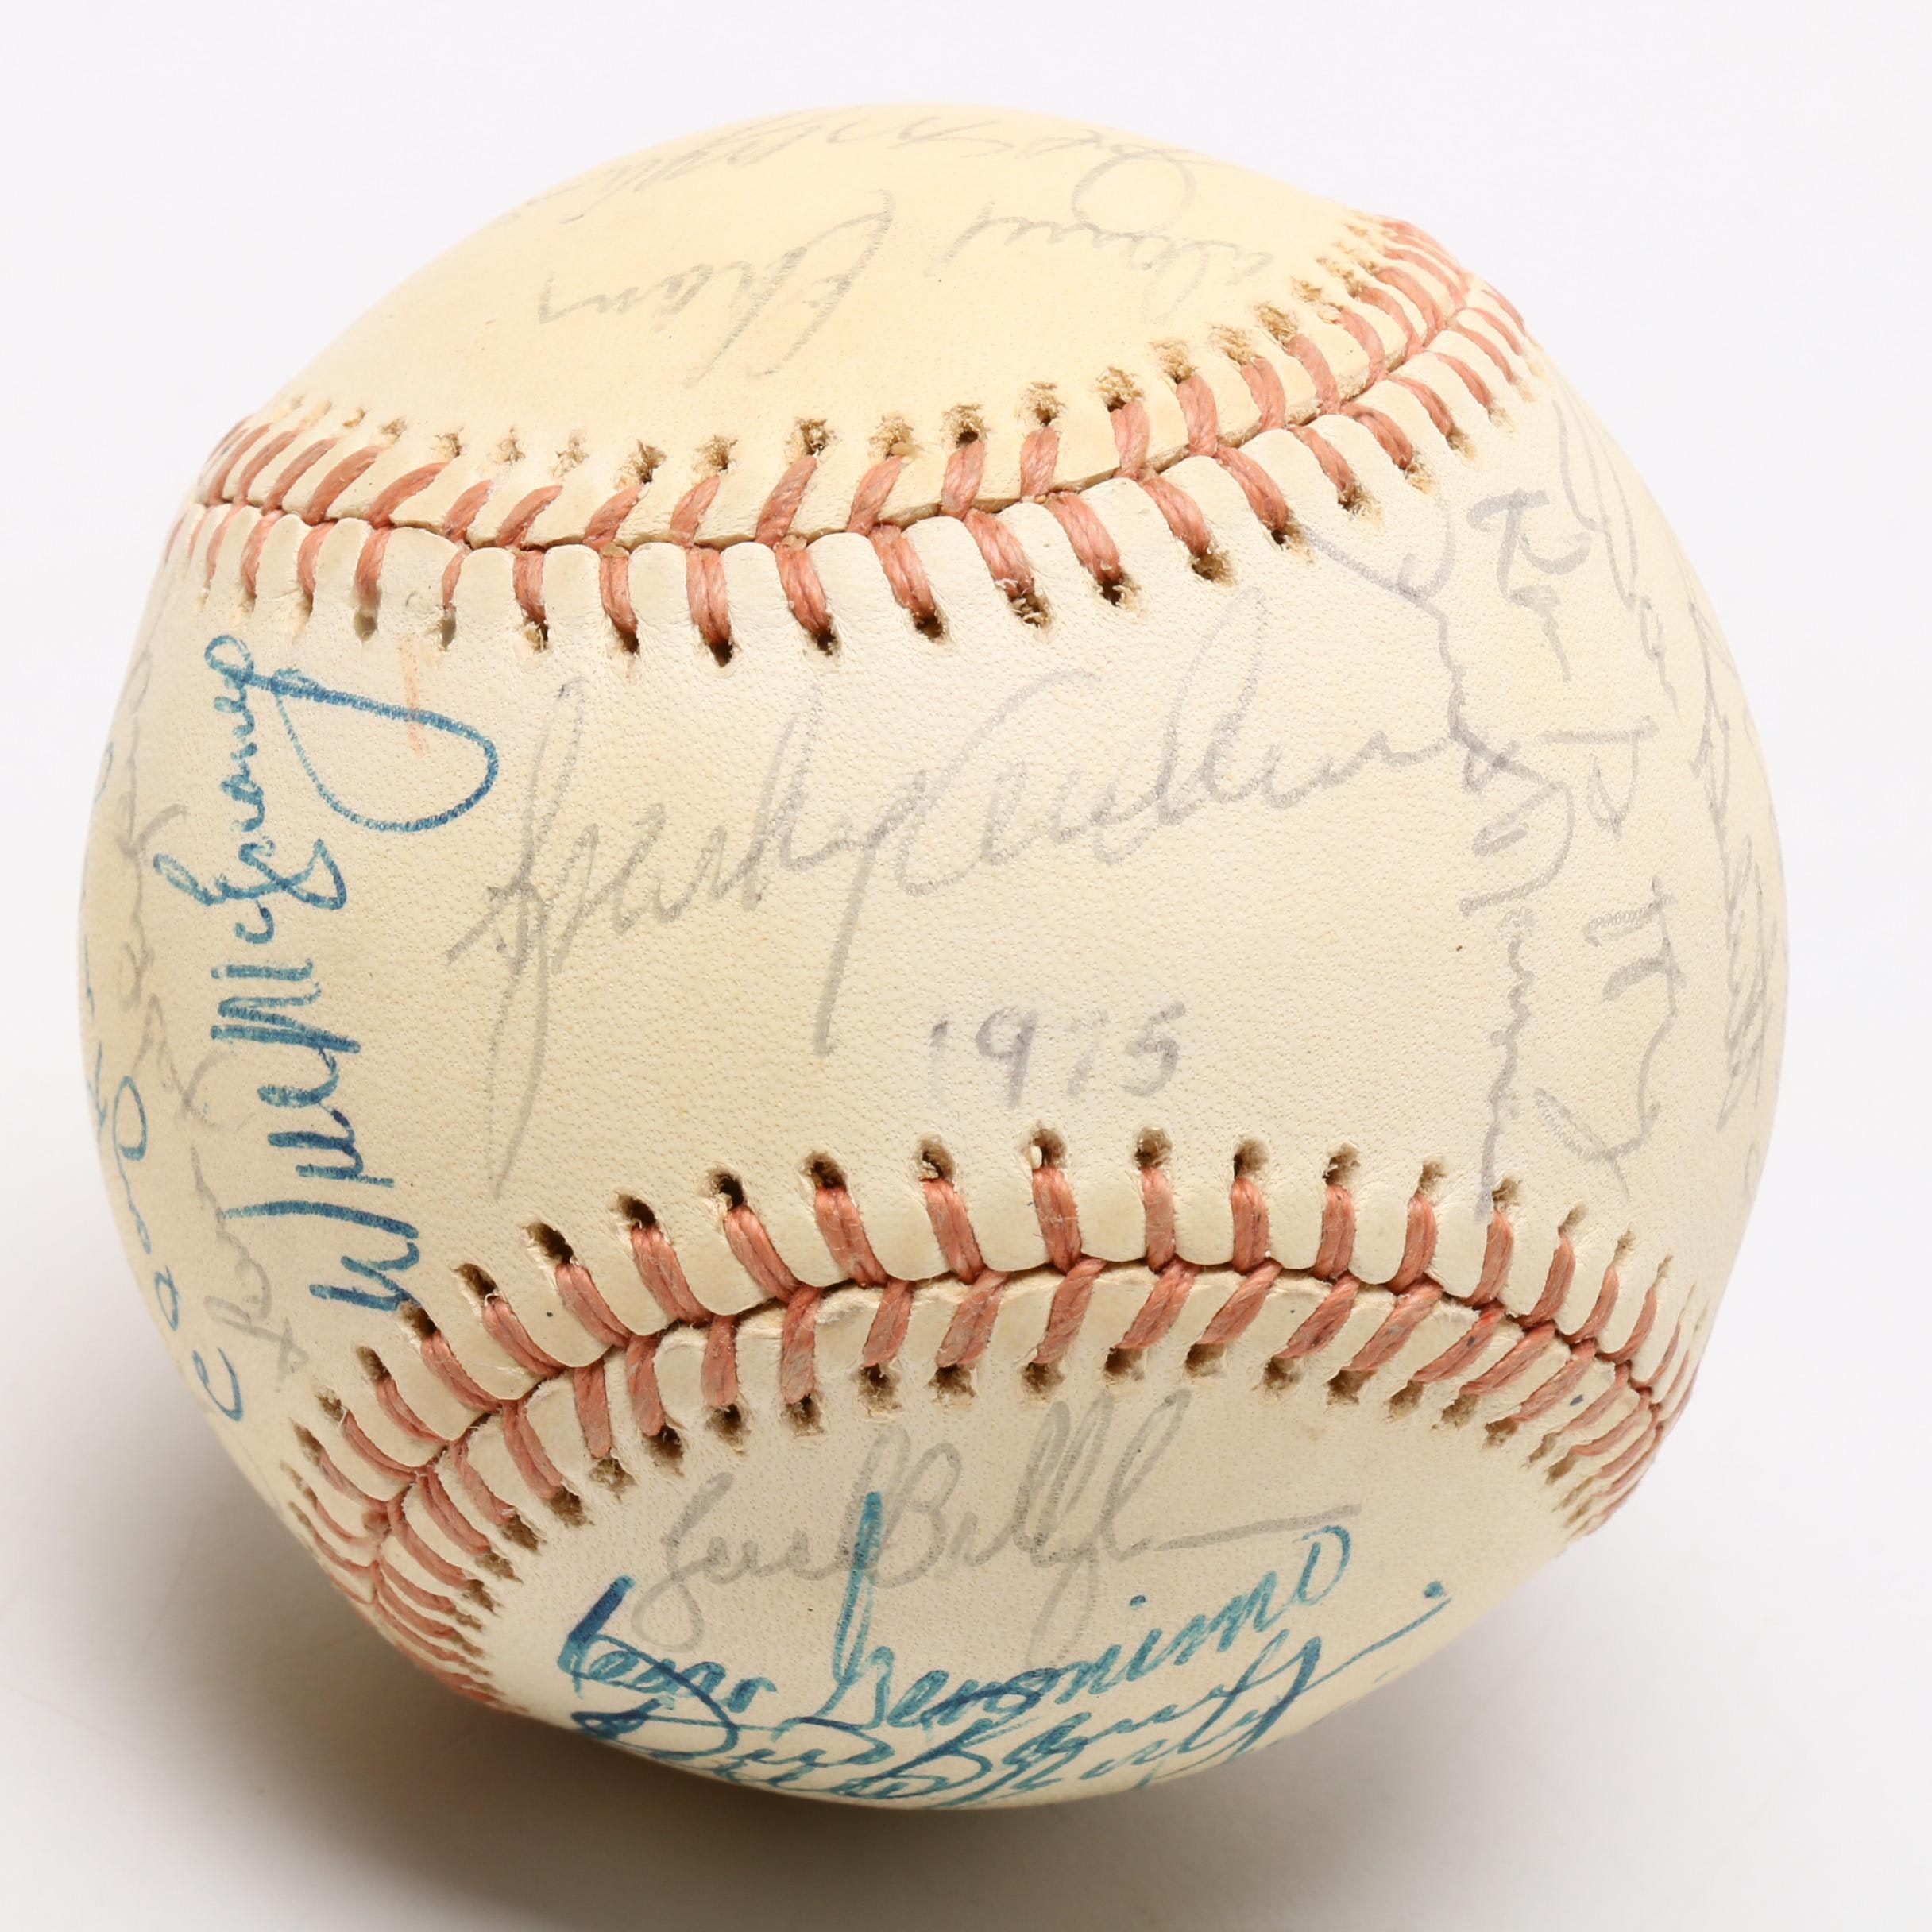 1974/1975 Cincinnati Reds Team Signed National League (Feeney) Rawlings Baseball